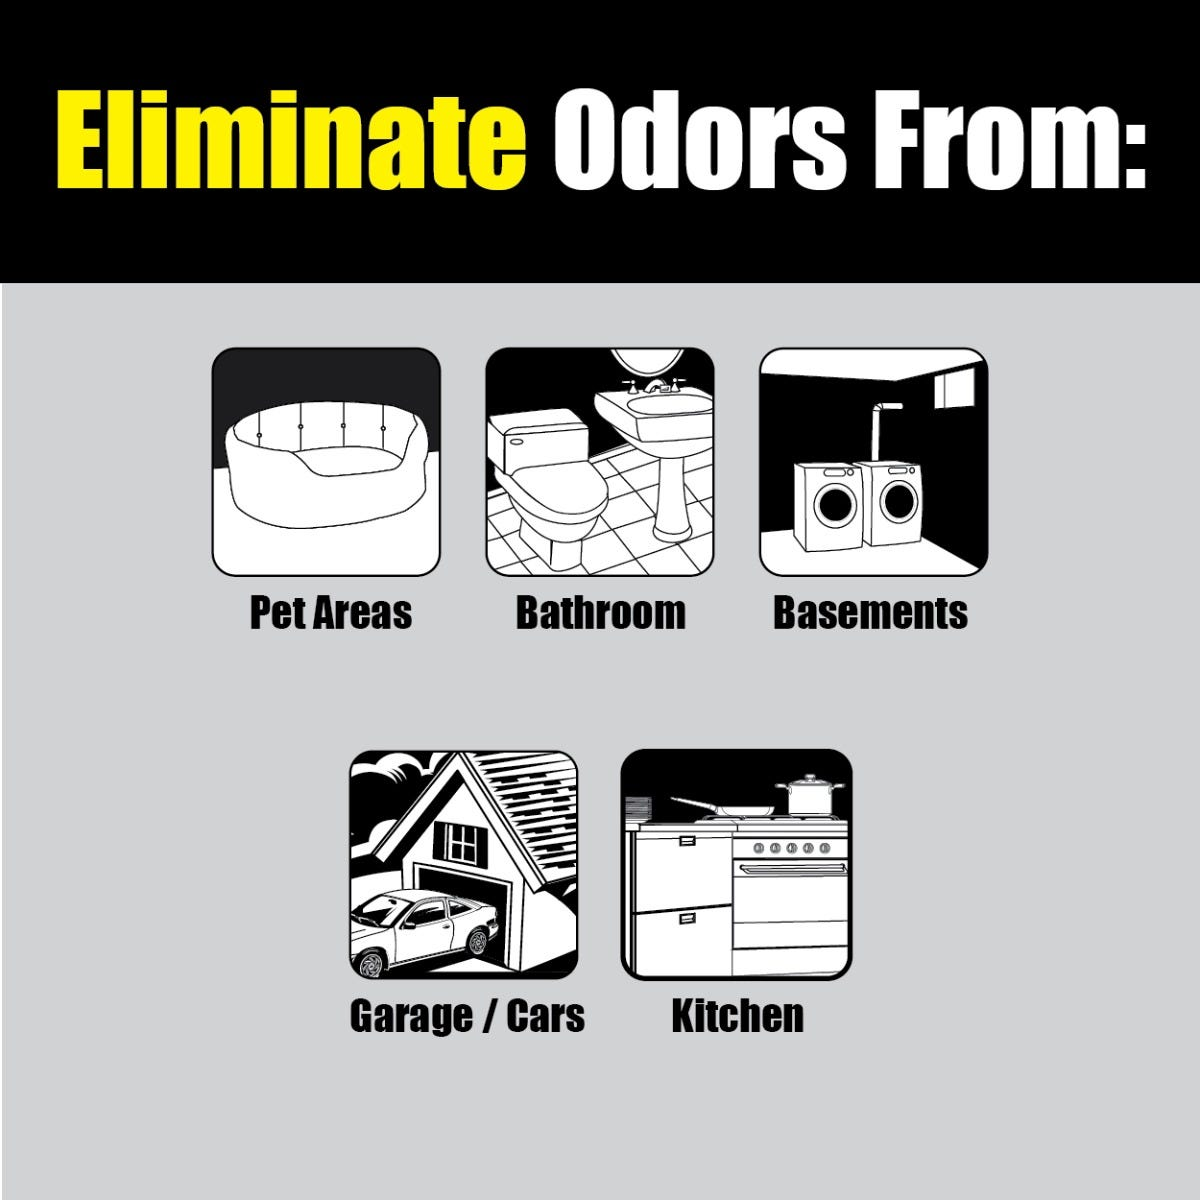 https://googone.com/media/catalog/product/b/a/basement_odor_eliminator_uses.jpg